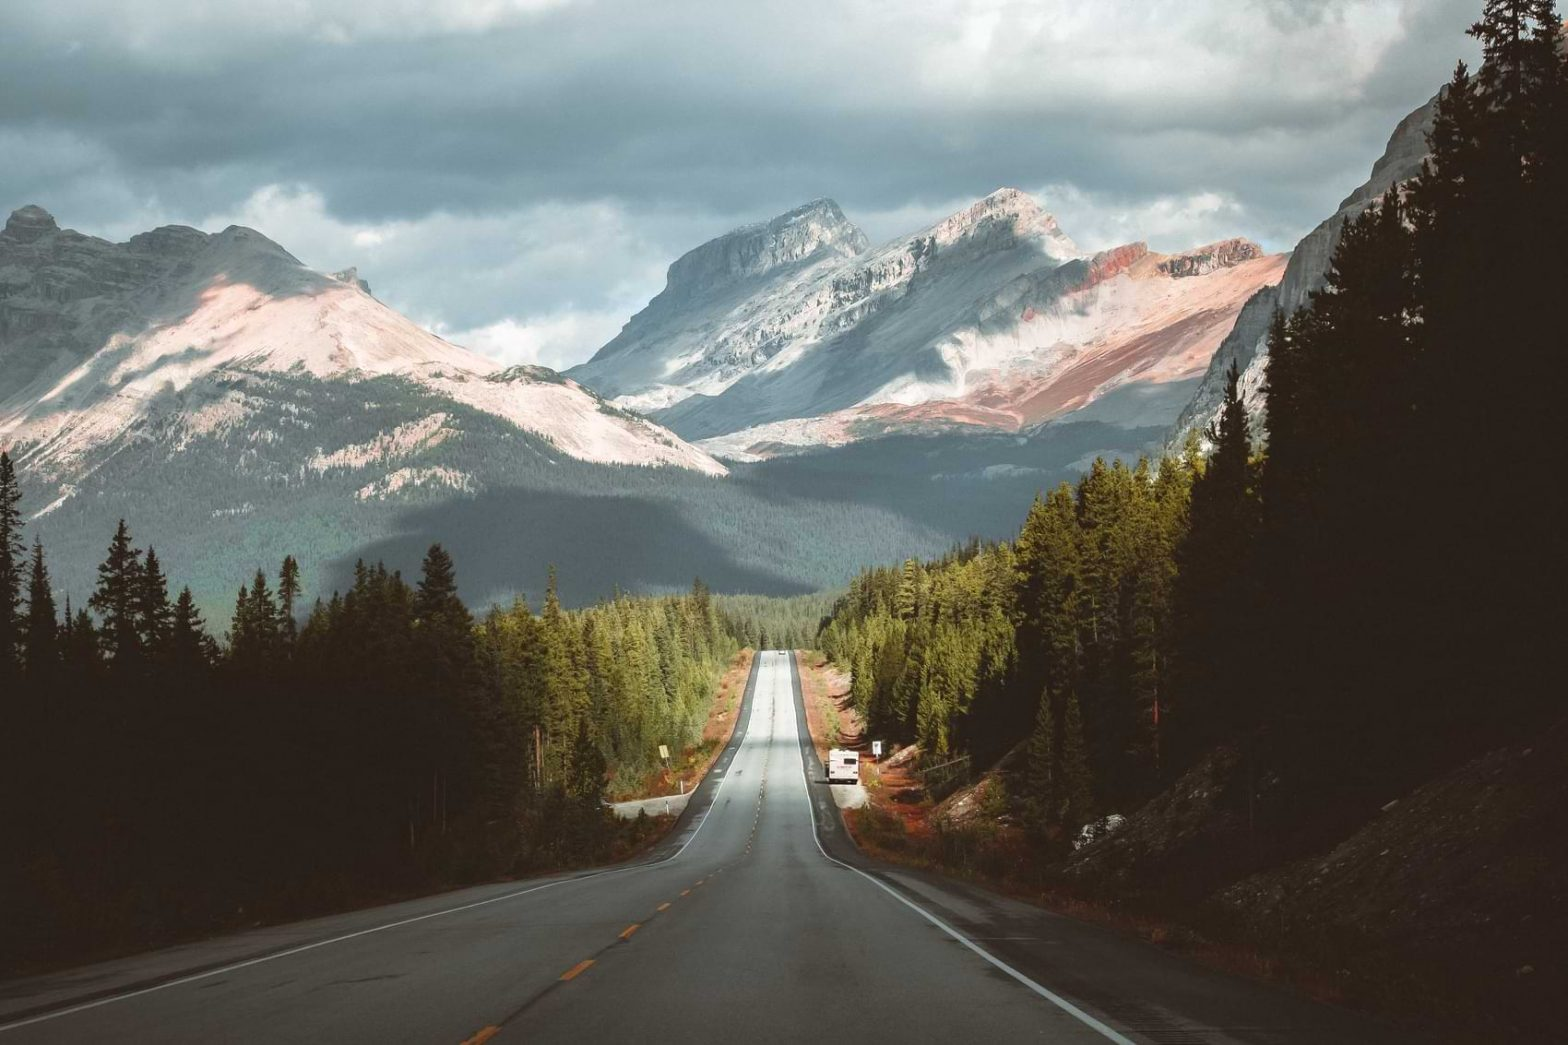 A road in rural Alberta surrounded by beautiful trees and a tall mountain